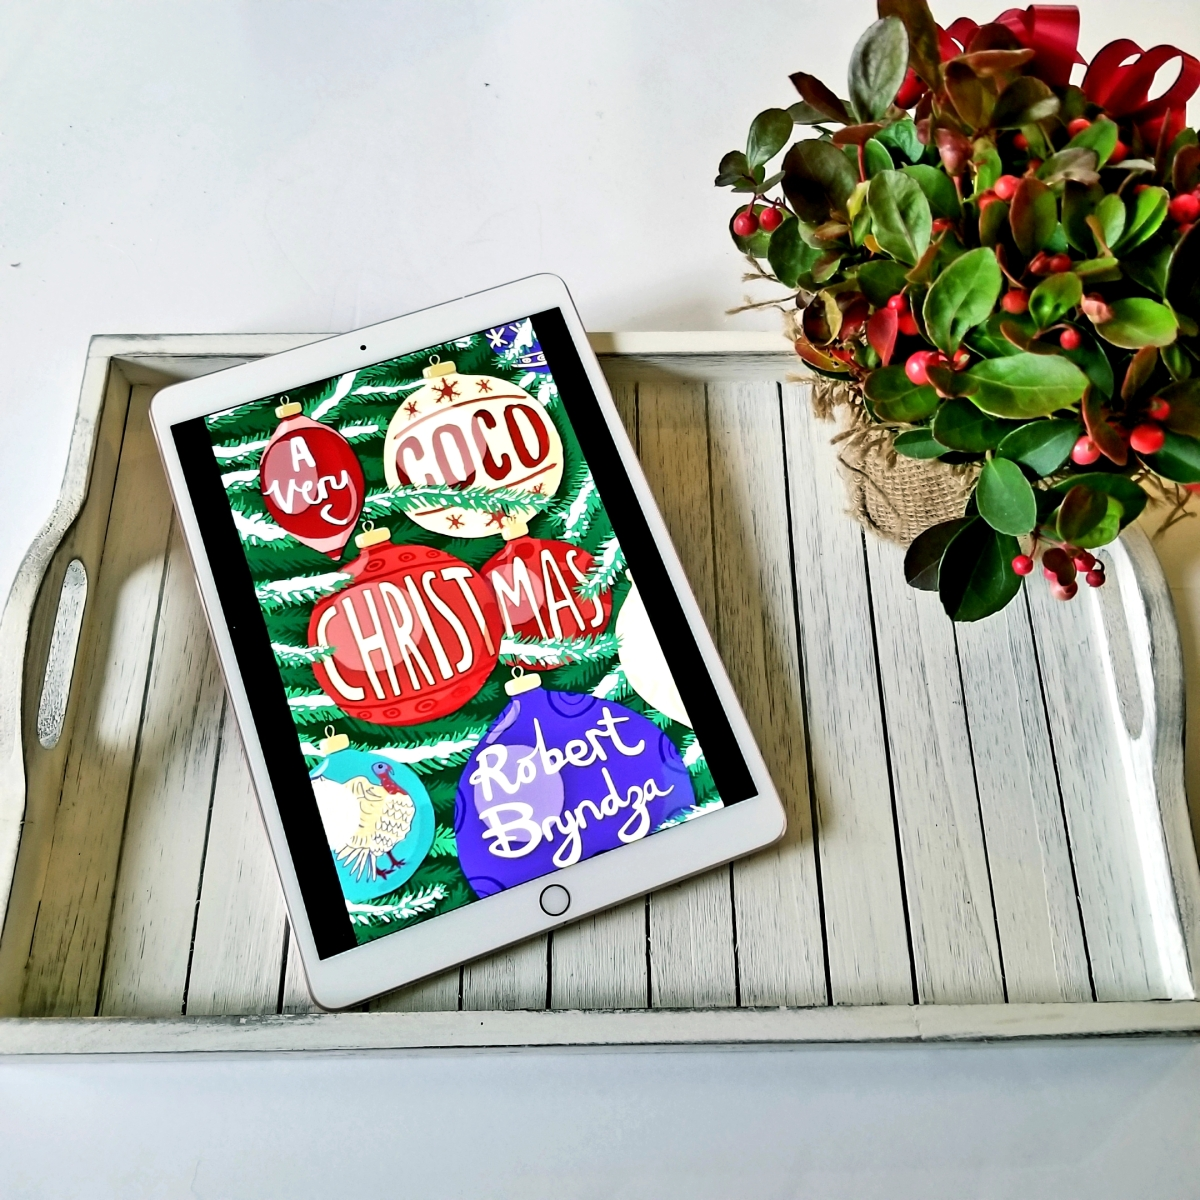 A Very Coco Christmas by Robert Bryndza #bookreview #tarheelreader #thrcocoxmas @robertbryndza @botbspublicity #averycocochristmas #teambryndza #blogtour #bookgiveaway